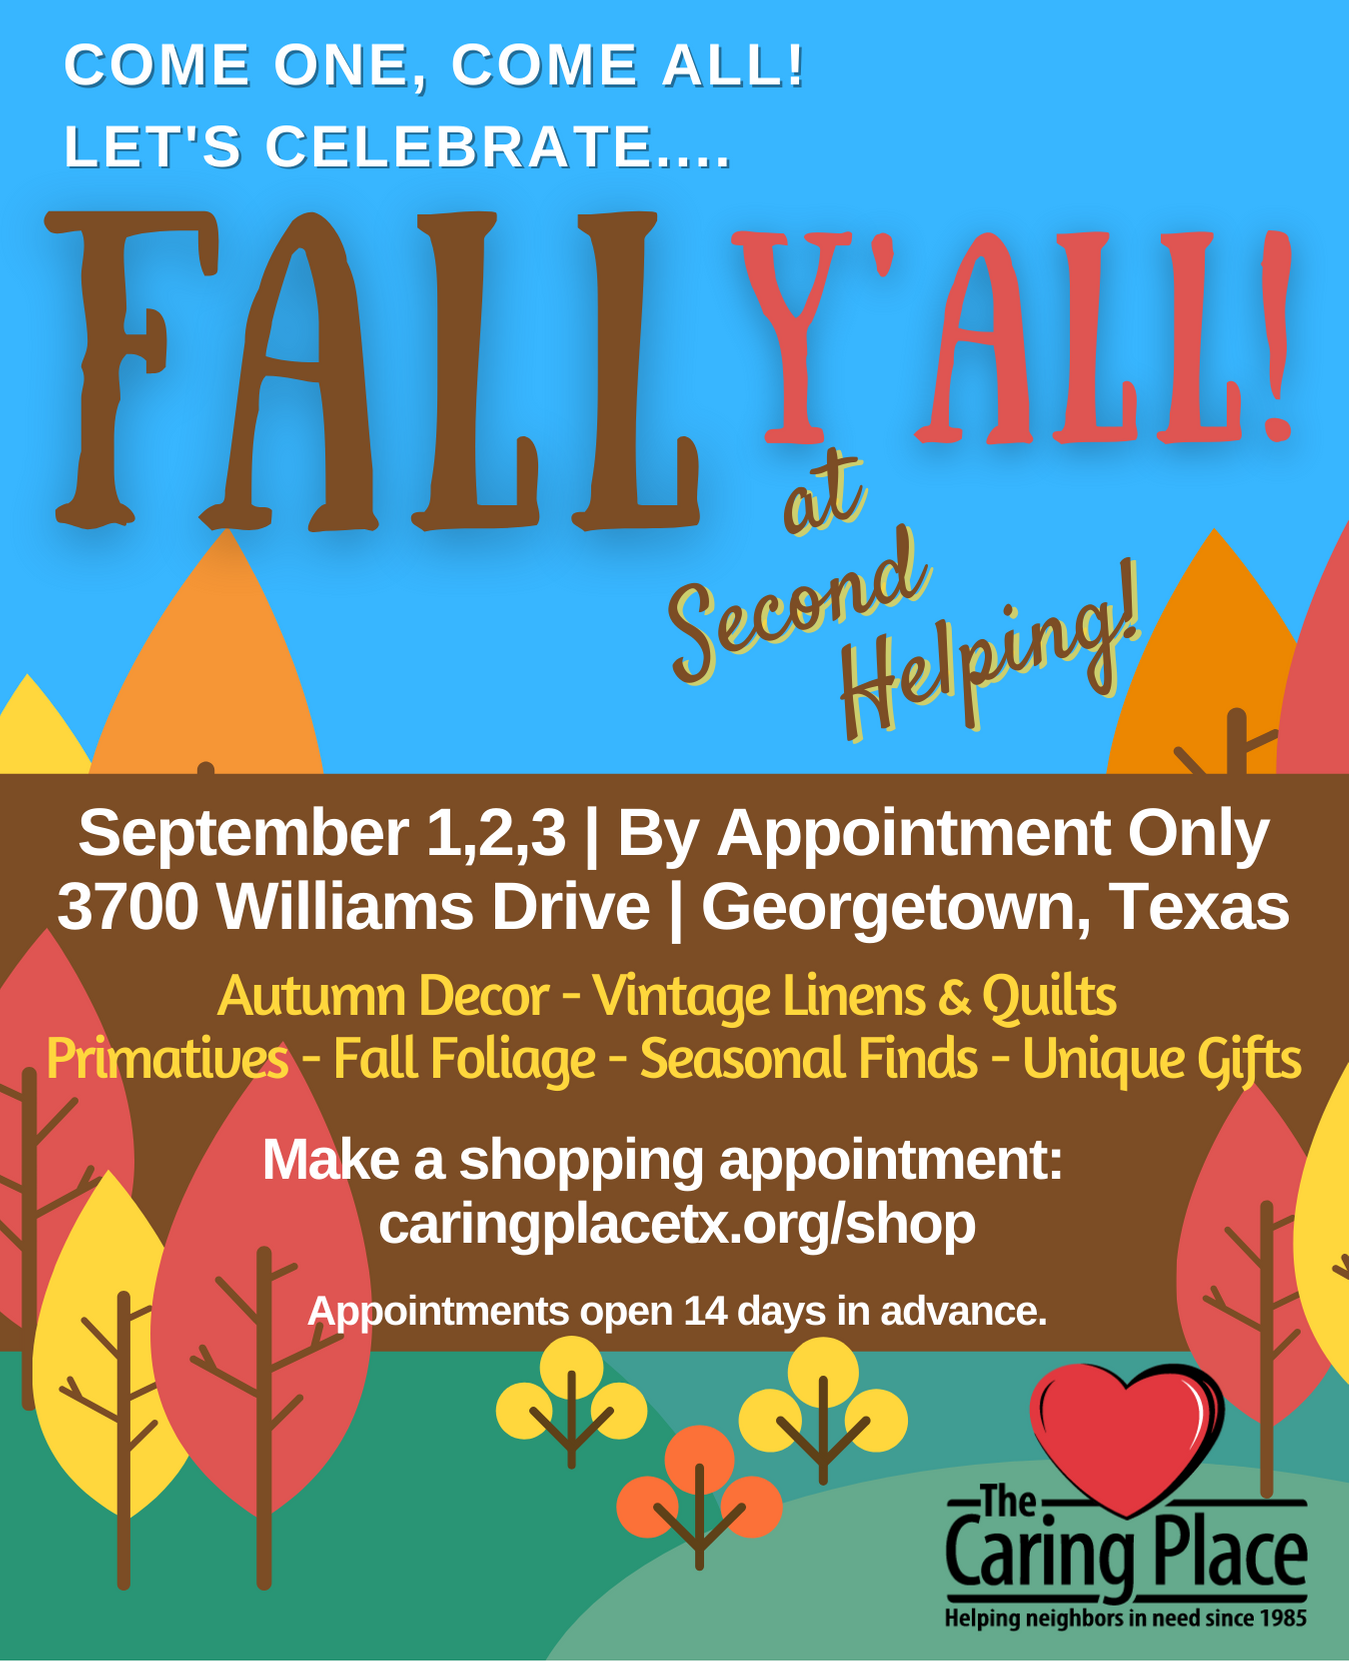 Fall Y'all is back at Second Helping (By Appointment)